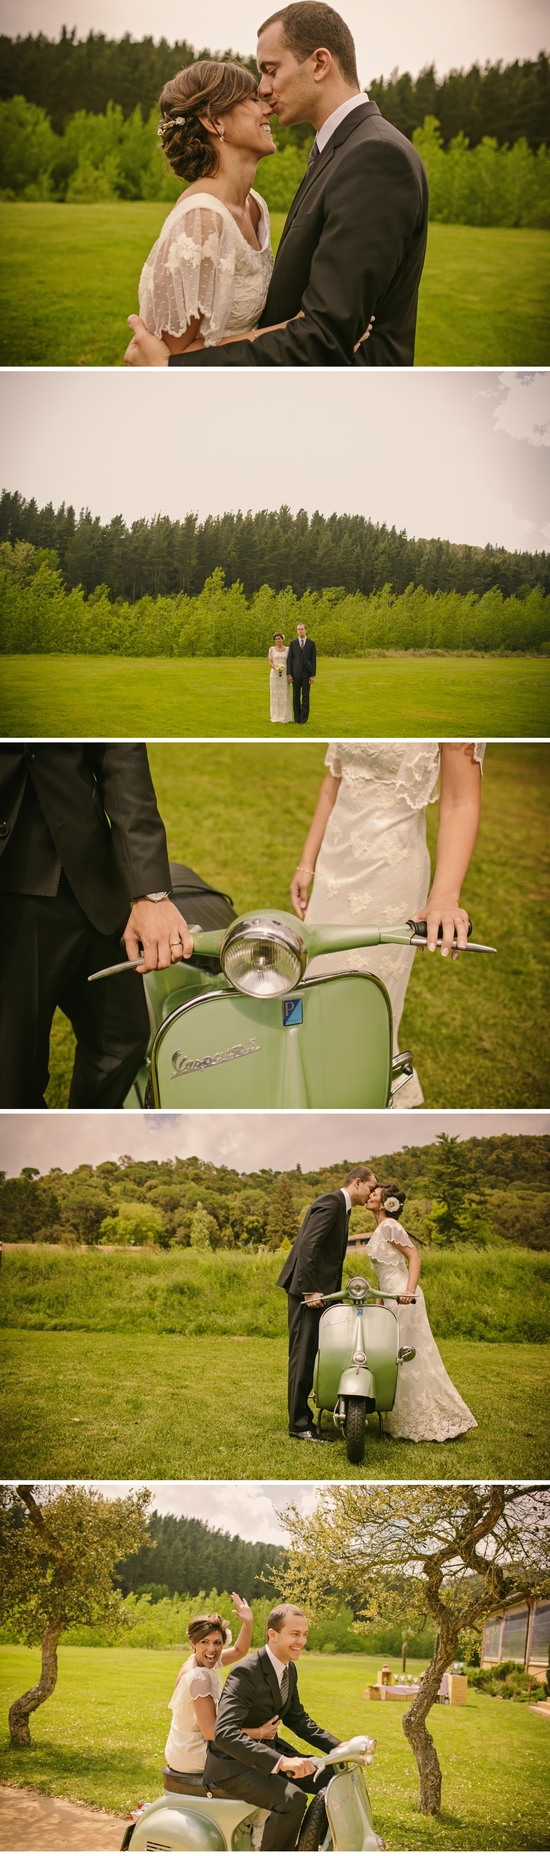 Real Spanish Wedding Otaduy Wedding Dress Outdoor Romantic Bride and Groom on Vespa